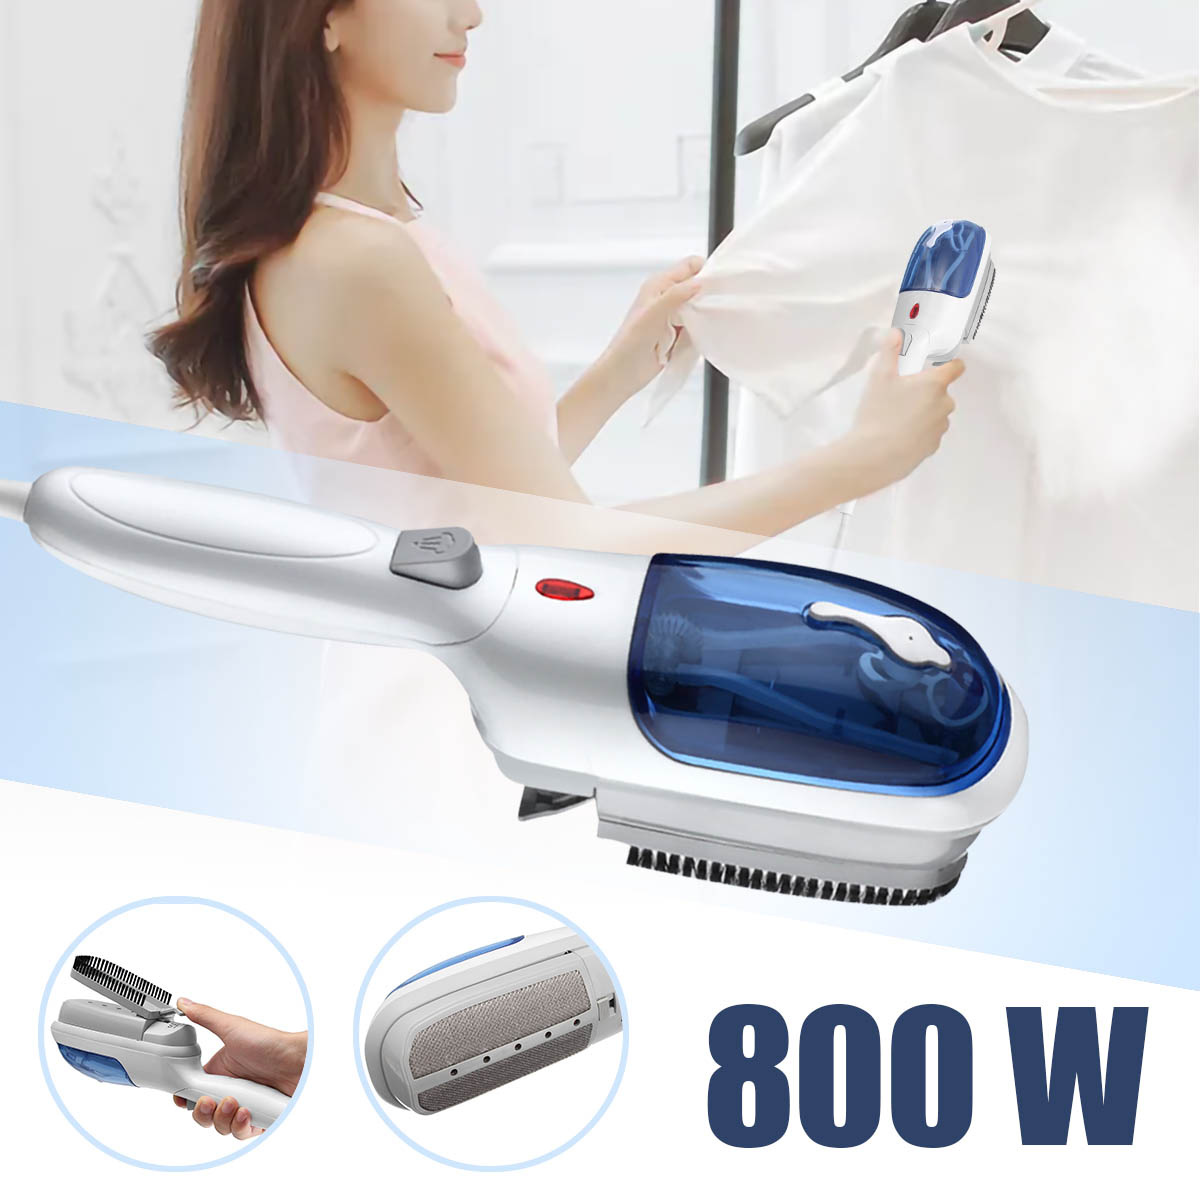 800W 110V Portable Handheld Garment Fabric Laundry Cloth Wrinkle Brush Steamer Electric Steam Iron Steamer Eliminate Wrinkles